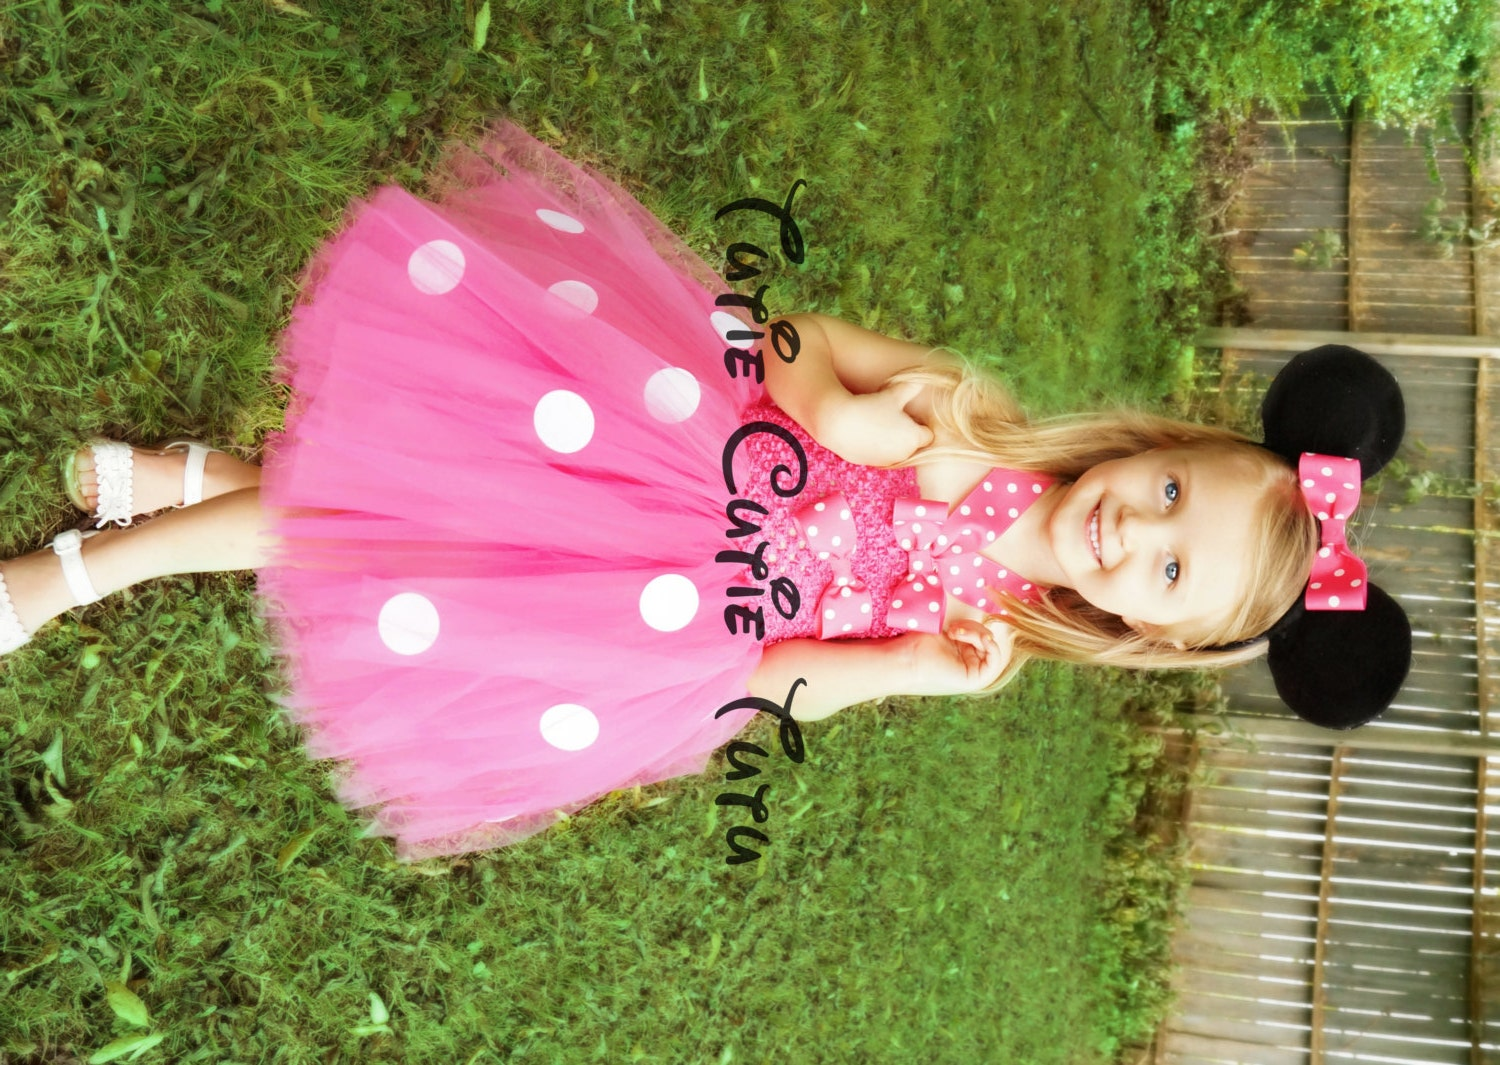 Polka Dot Dress Halloween Costume